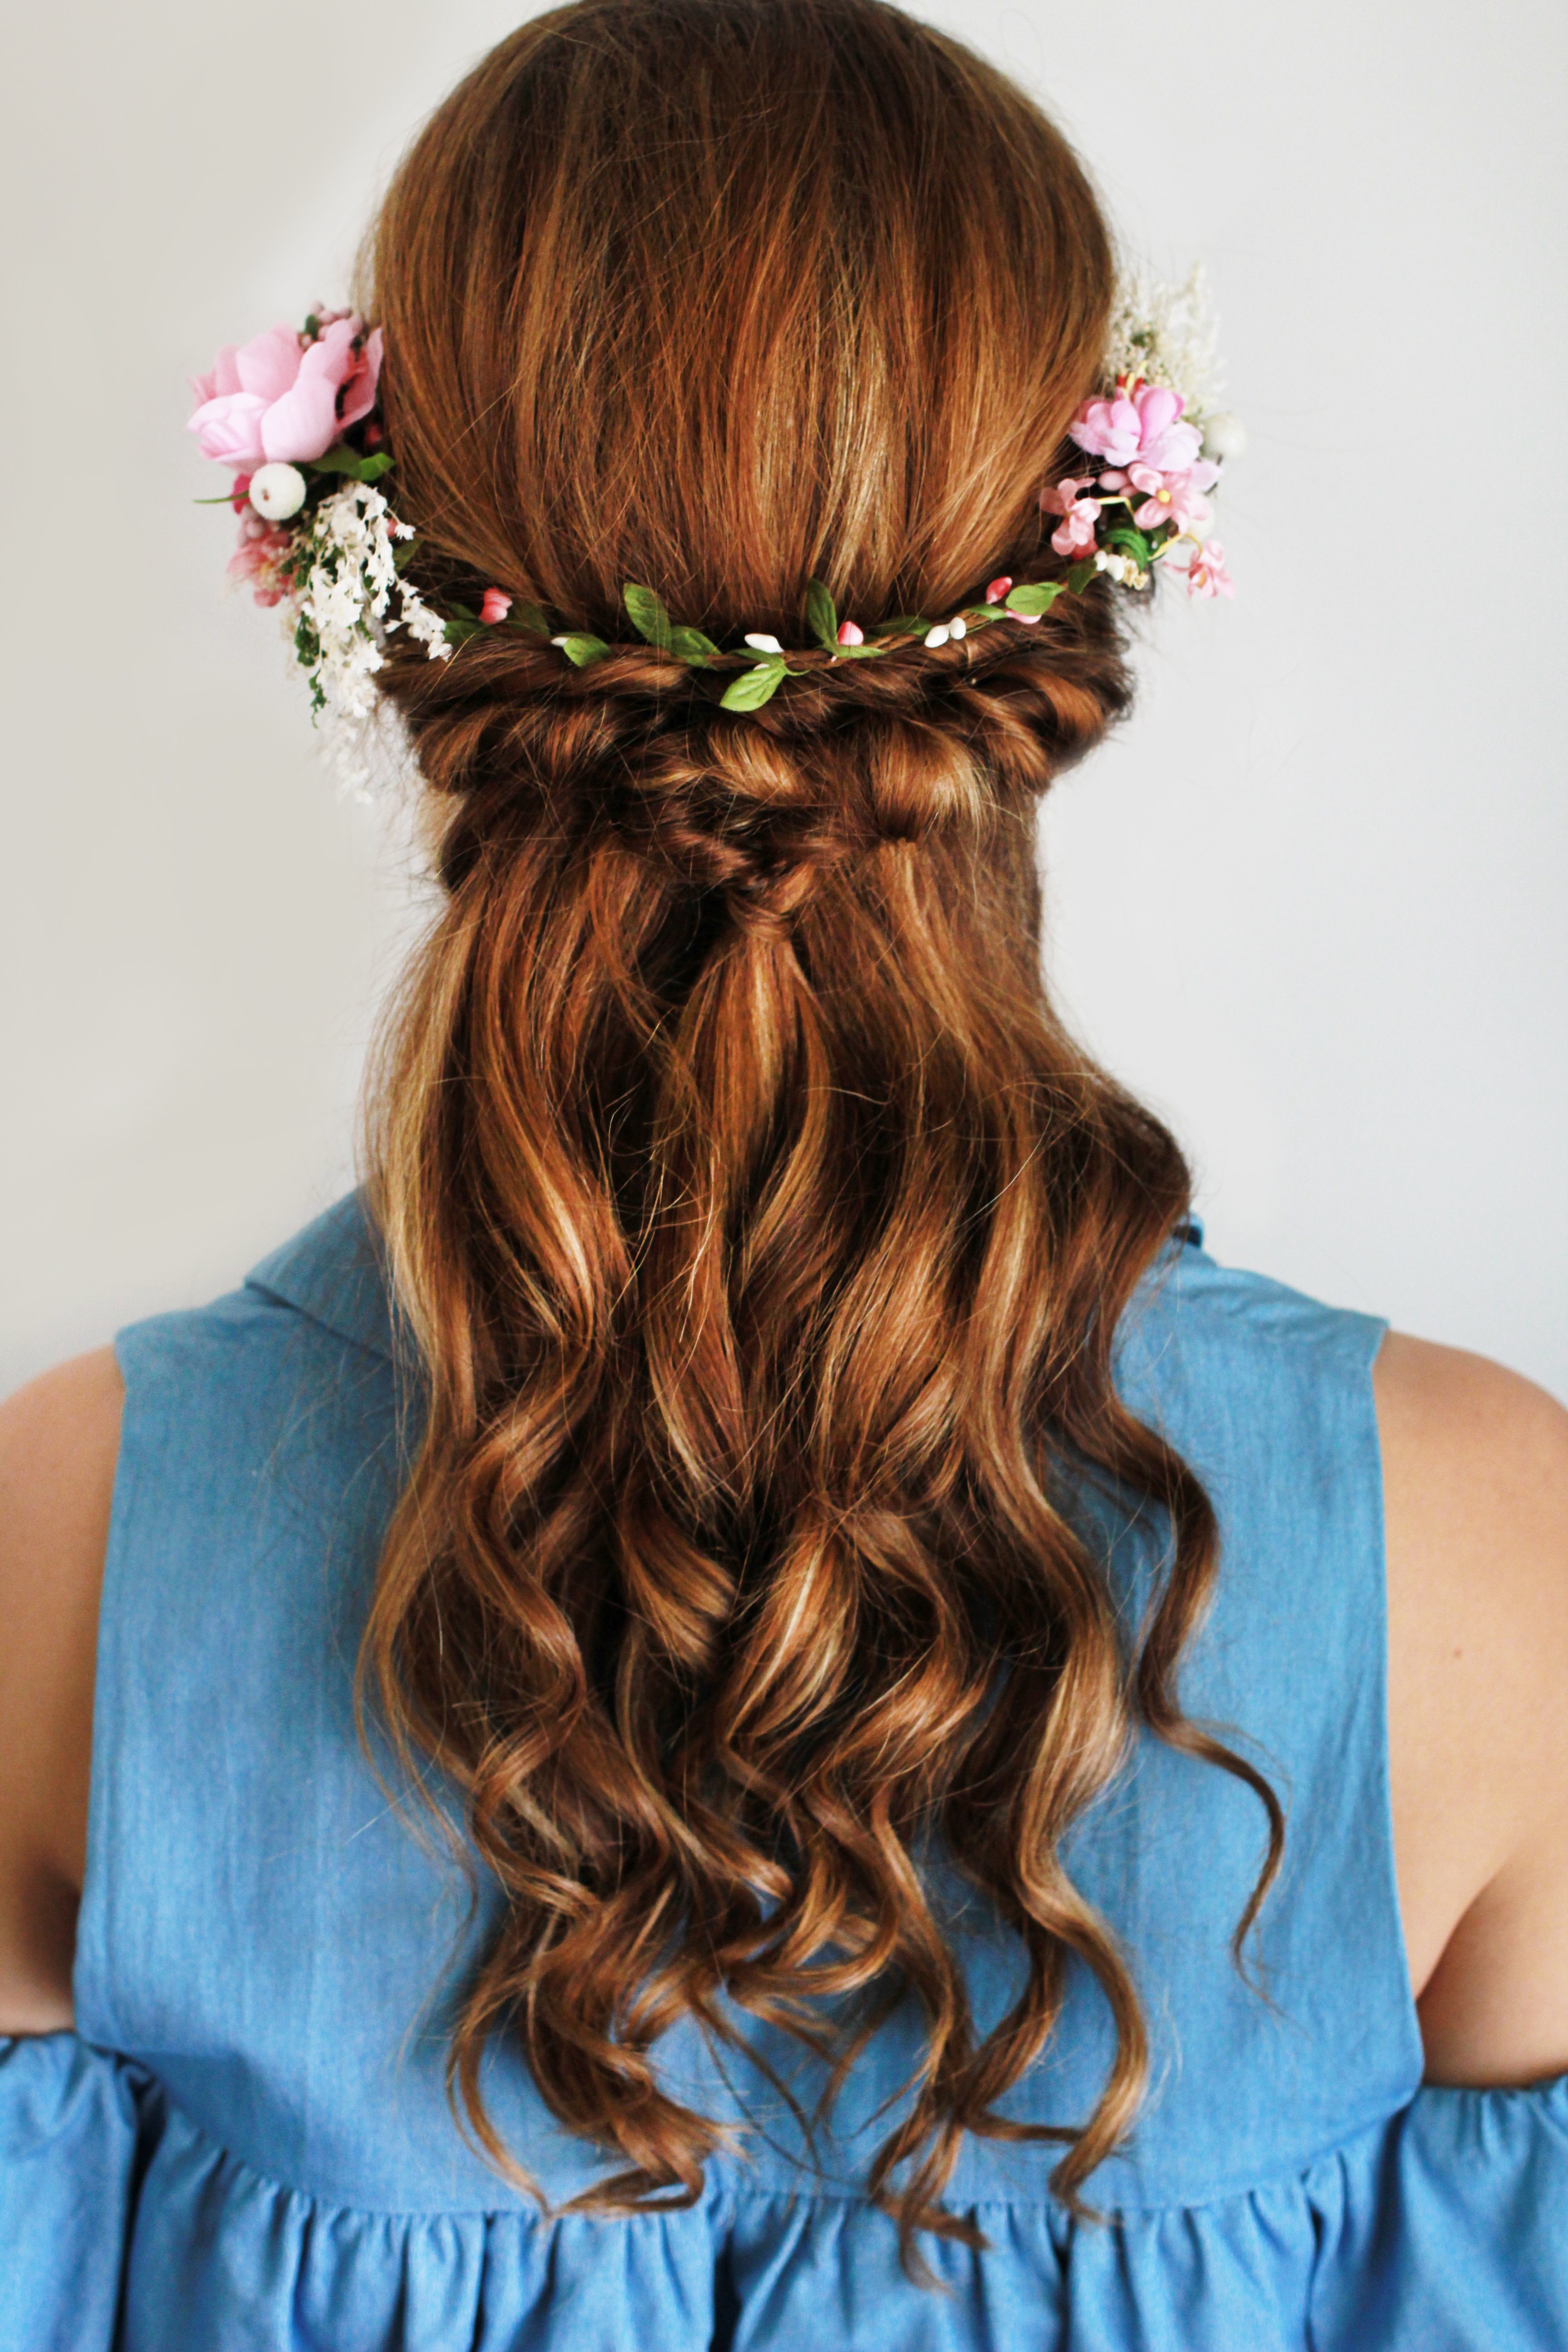 Boho Bridal or Event Look